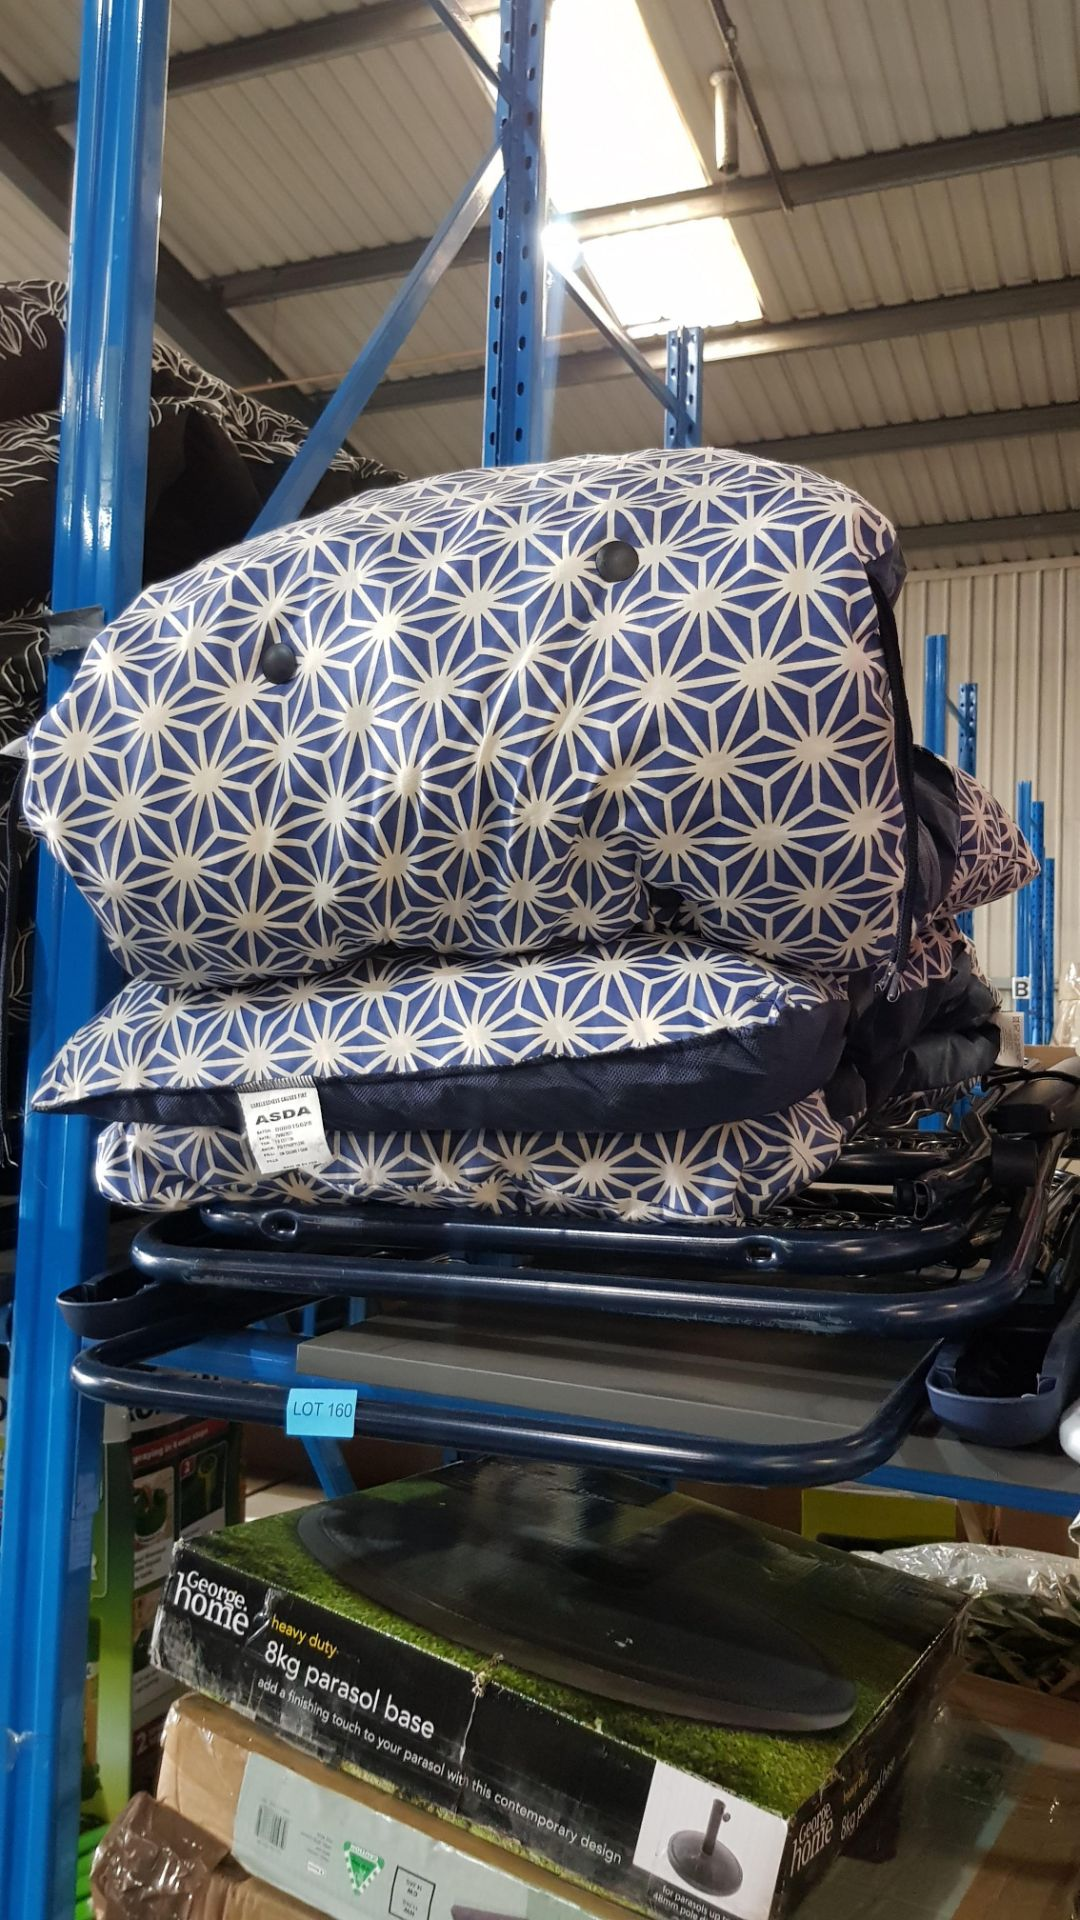 (3A) 2x Blue White Geometric Pattern Reclining Garden Chair. - Image 2 of 3